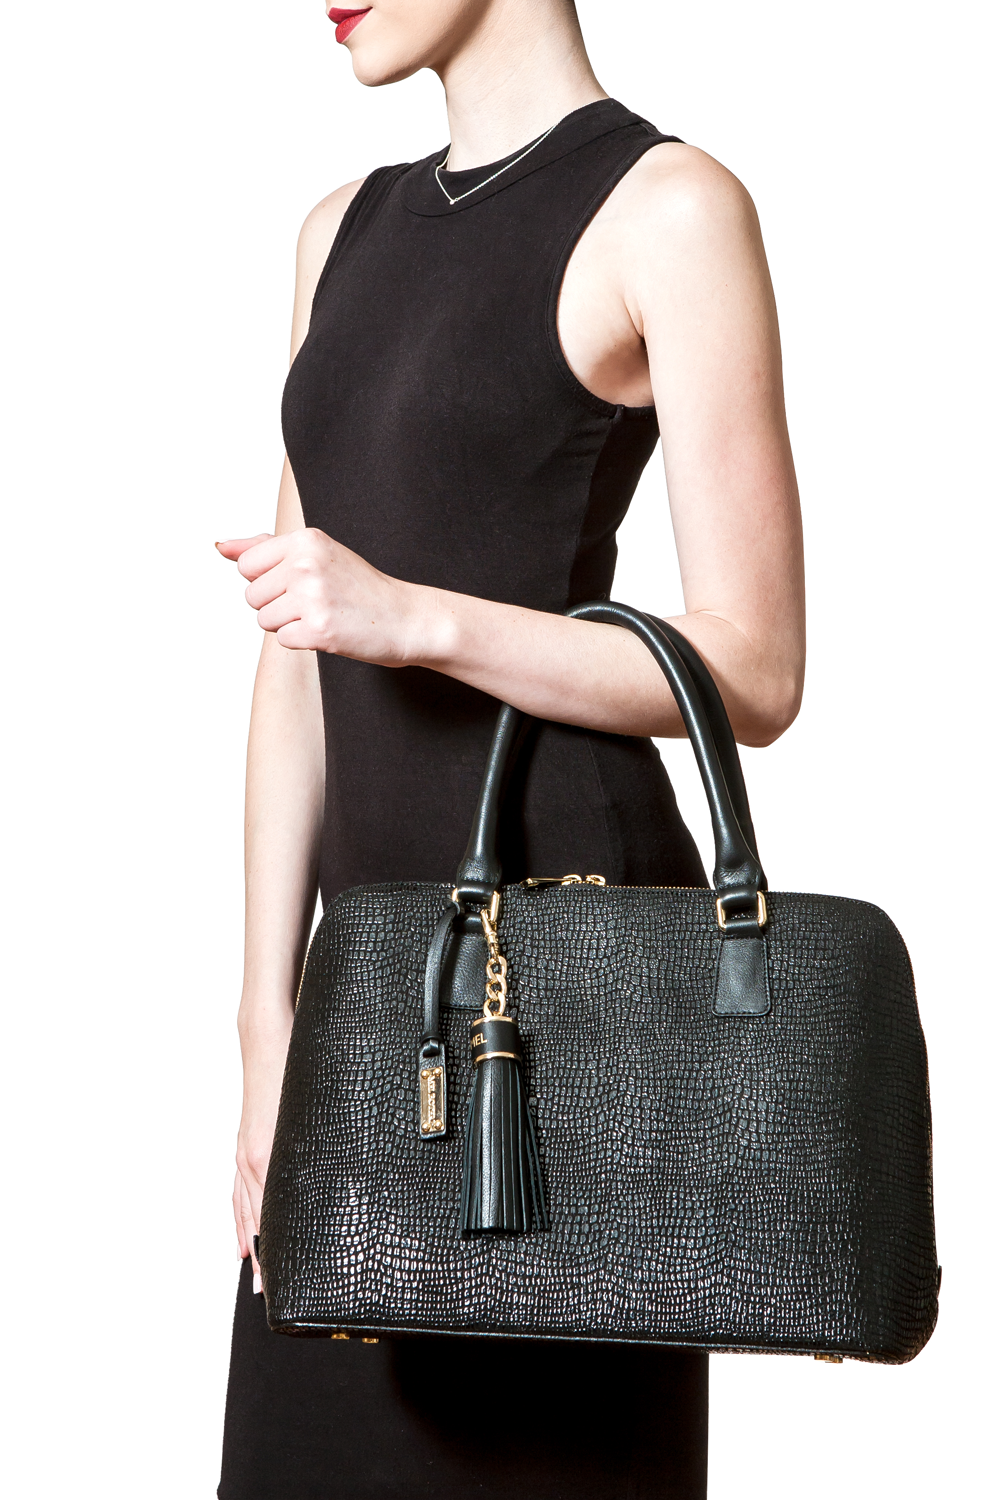 Mel Boteri | High Gloss, Black Lizard-Print Leather 'Watson' Tote | Model View